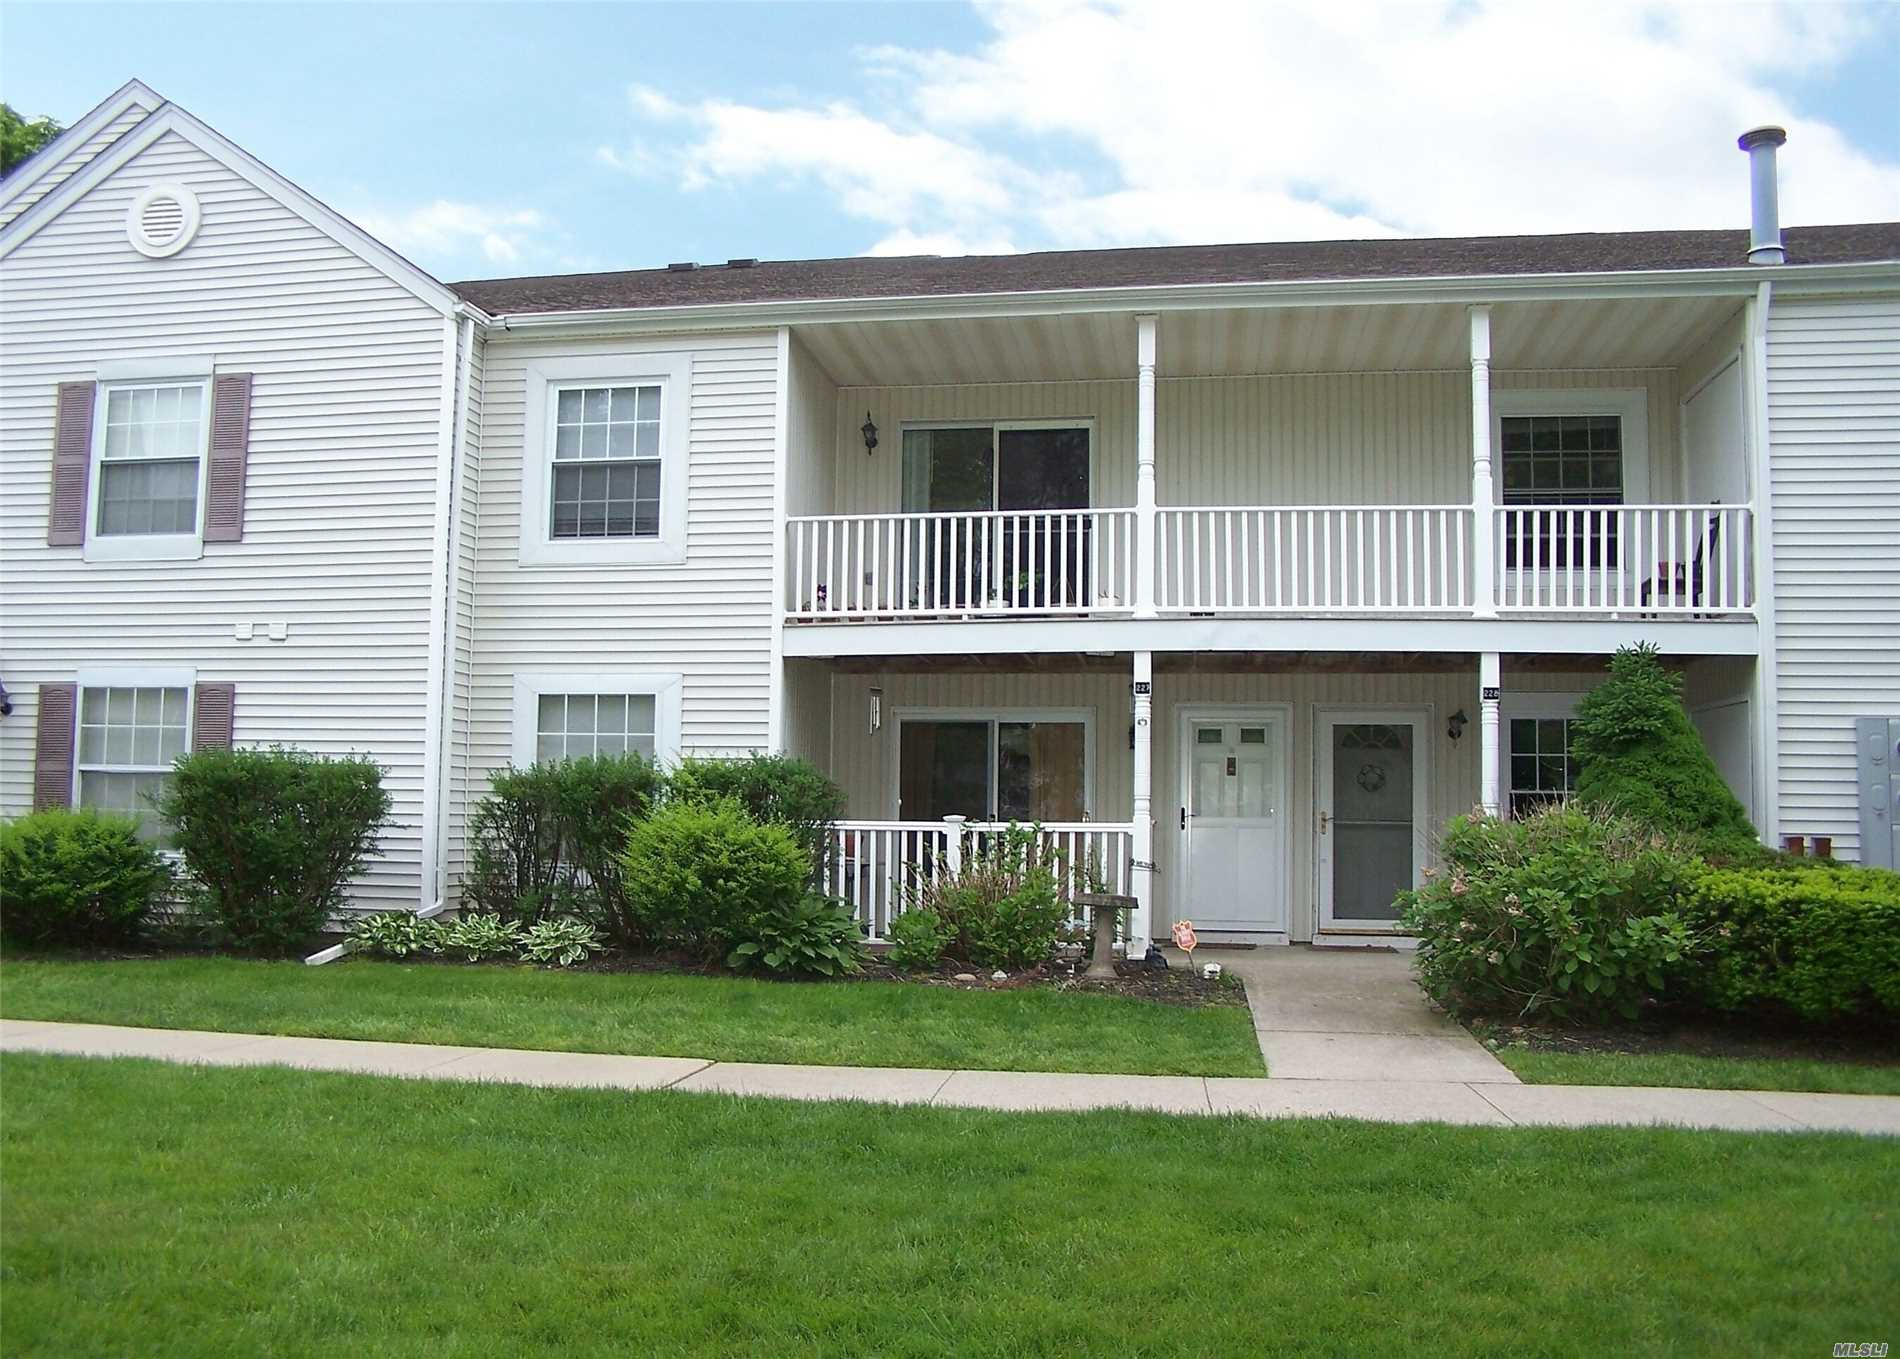 Sale may be subject to term & conditions of an offering plan. Beautiful First Floor Unit With Spacious With Tranquil View of the Lake, Gorgeous Eat In Kitchen, Granite Counters and Tile Back Splash,  Updated Baths, CAC, Community Pool and Gym. Common Fees Include: Water, Snow Removal, Landscaping ;Access to Clubhouse,  Pool, Tennis Courts and Gym . Priced Right! Owner Motivated!